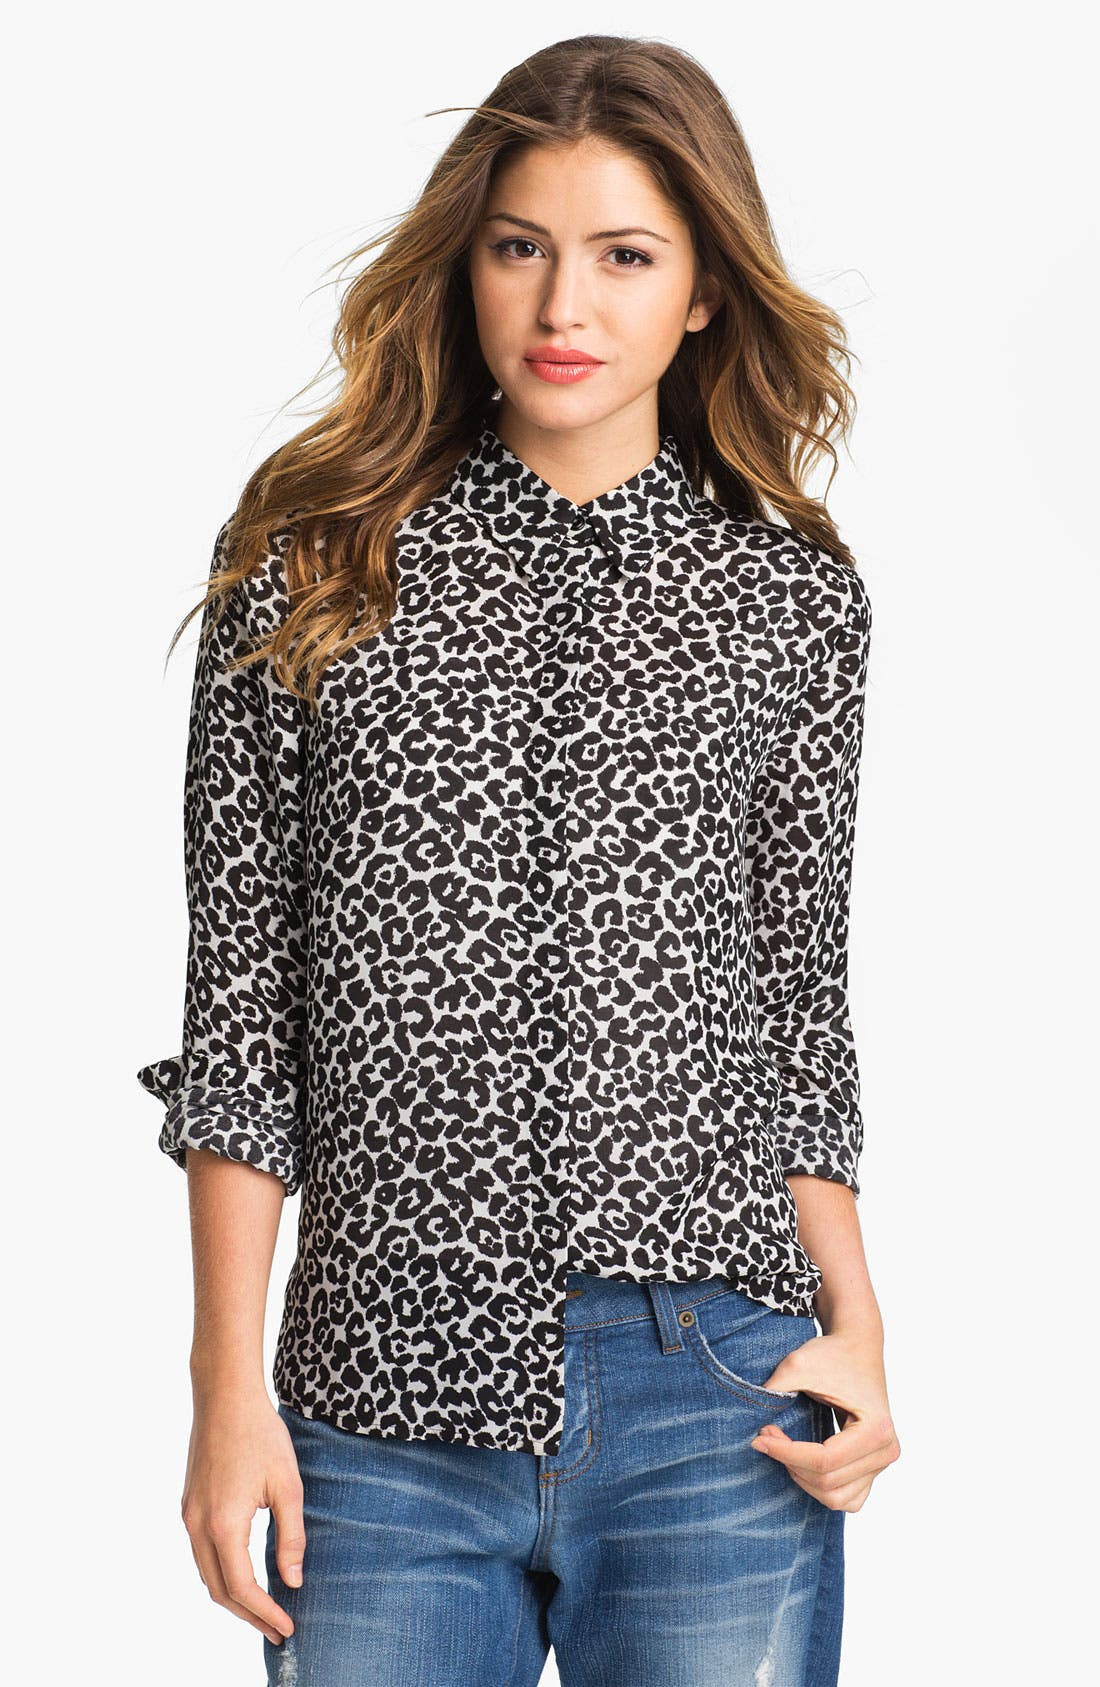 Alternate Image 1 Selected - Vince Camuto Leopard Print Blouse